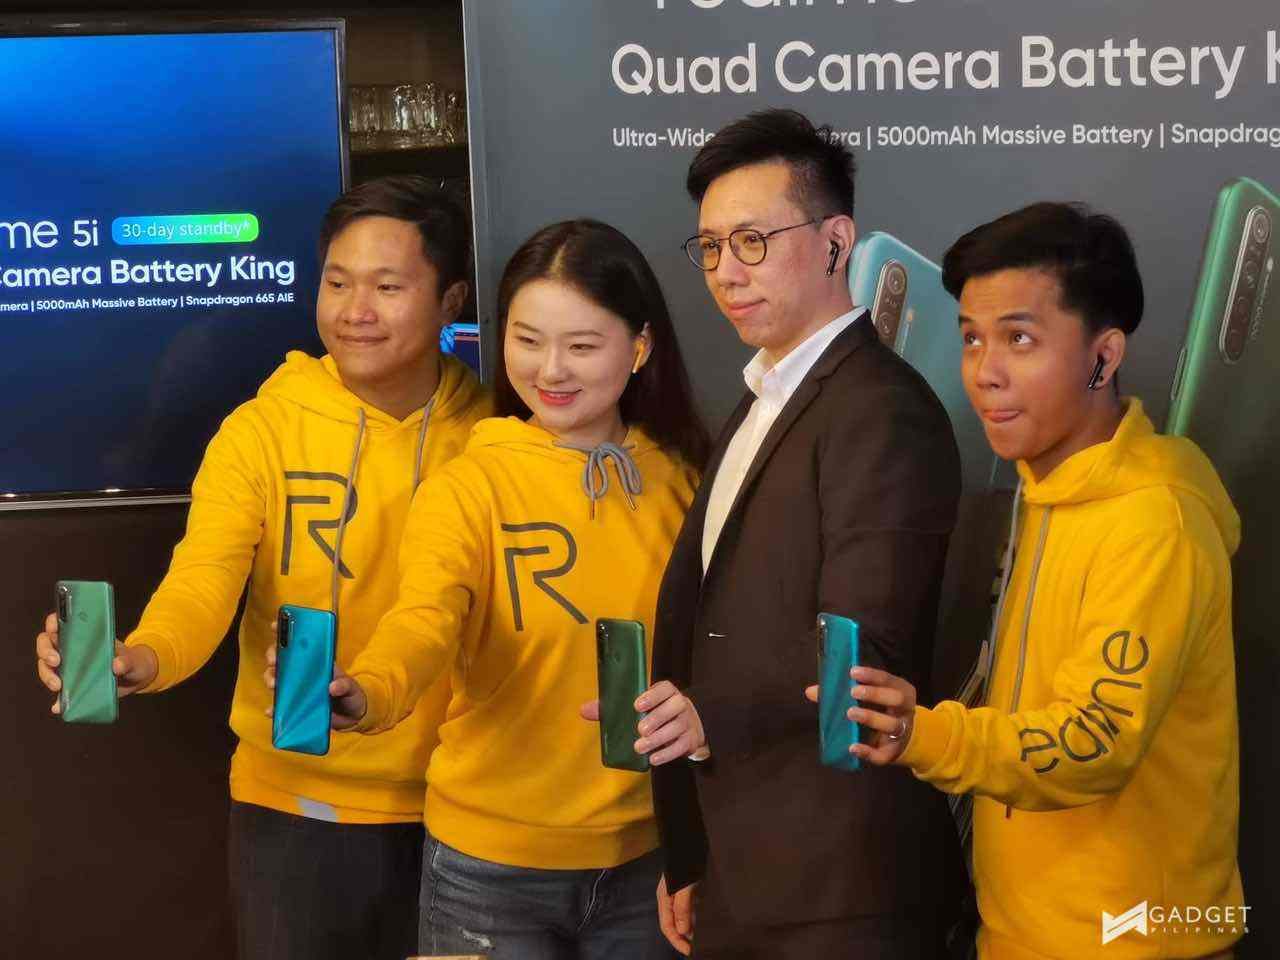 realme 5i, Realme 5i Gets Priced, Available in Stores Starting February 1!, Gadget Pilipinas, Gadget Pilipinas